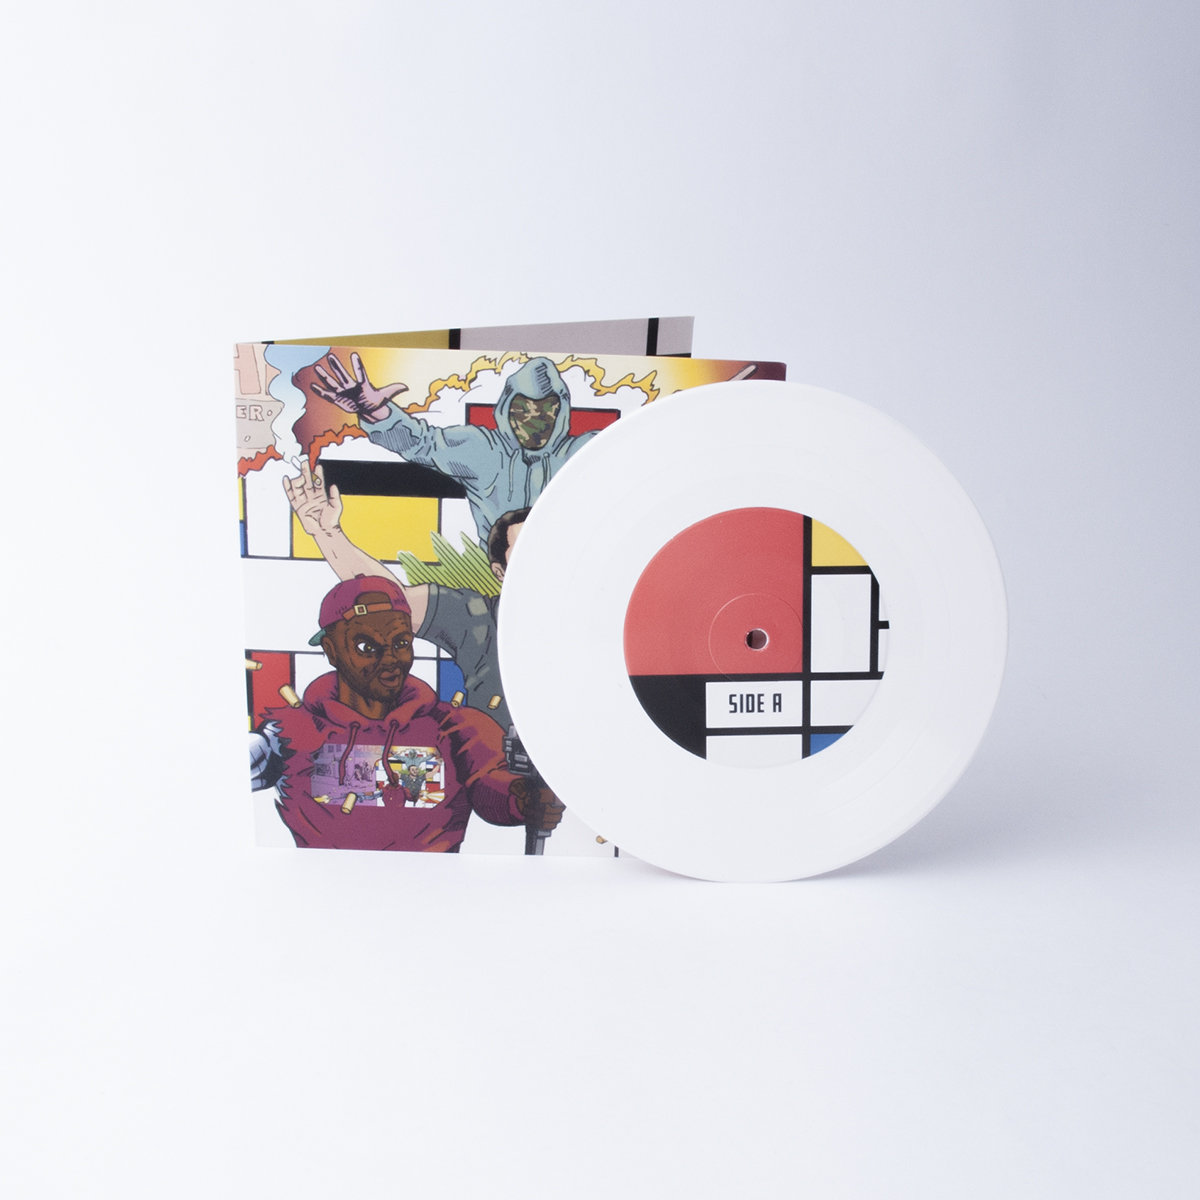 Grapes Of Math featuring Mach Hommy, Koncept Jack$on & Tha